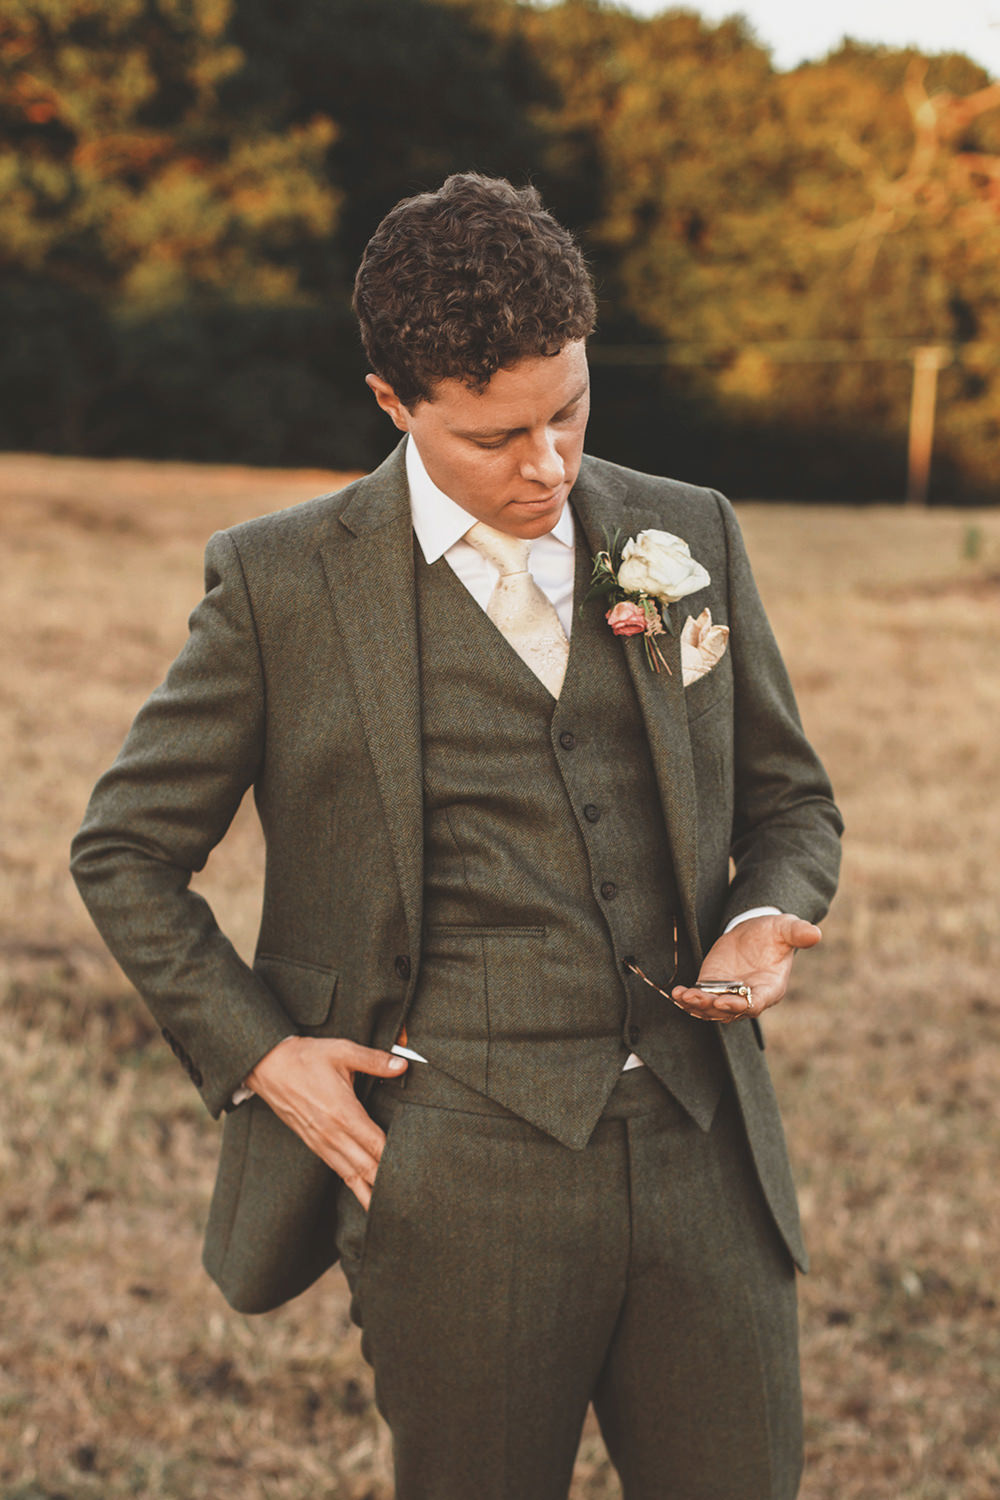 Groom Suit Green Tweed Waistcoat Summer Sunflower Rustic Wedding Masha Unwerth